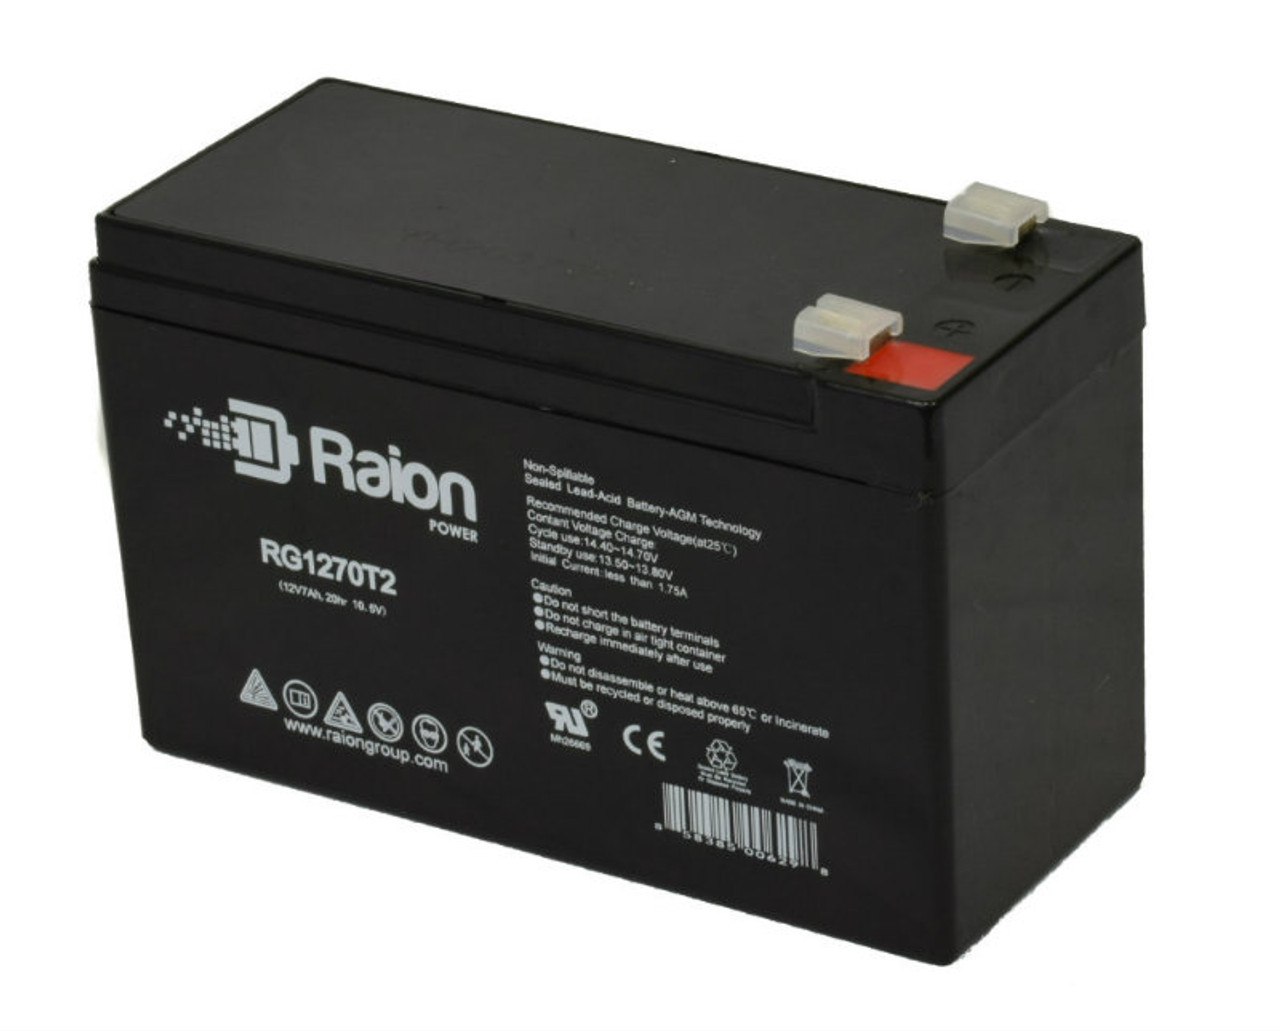 Raion Power RG1270T1 Replacement Battery for Ultratech UT-1270